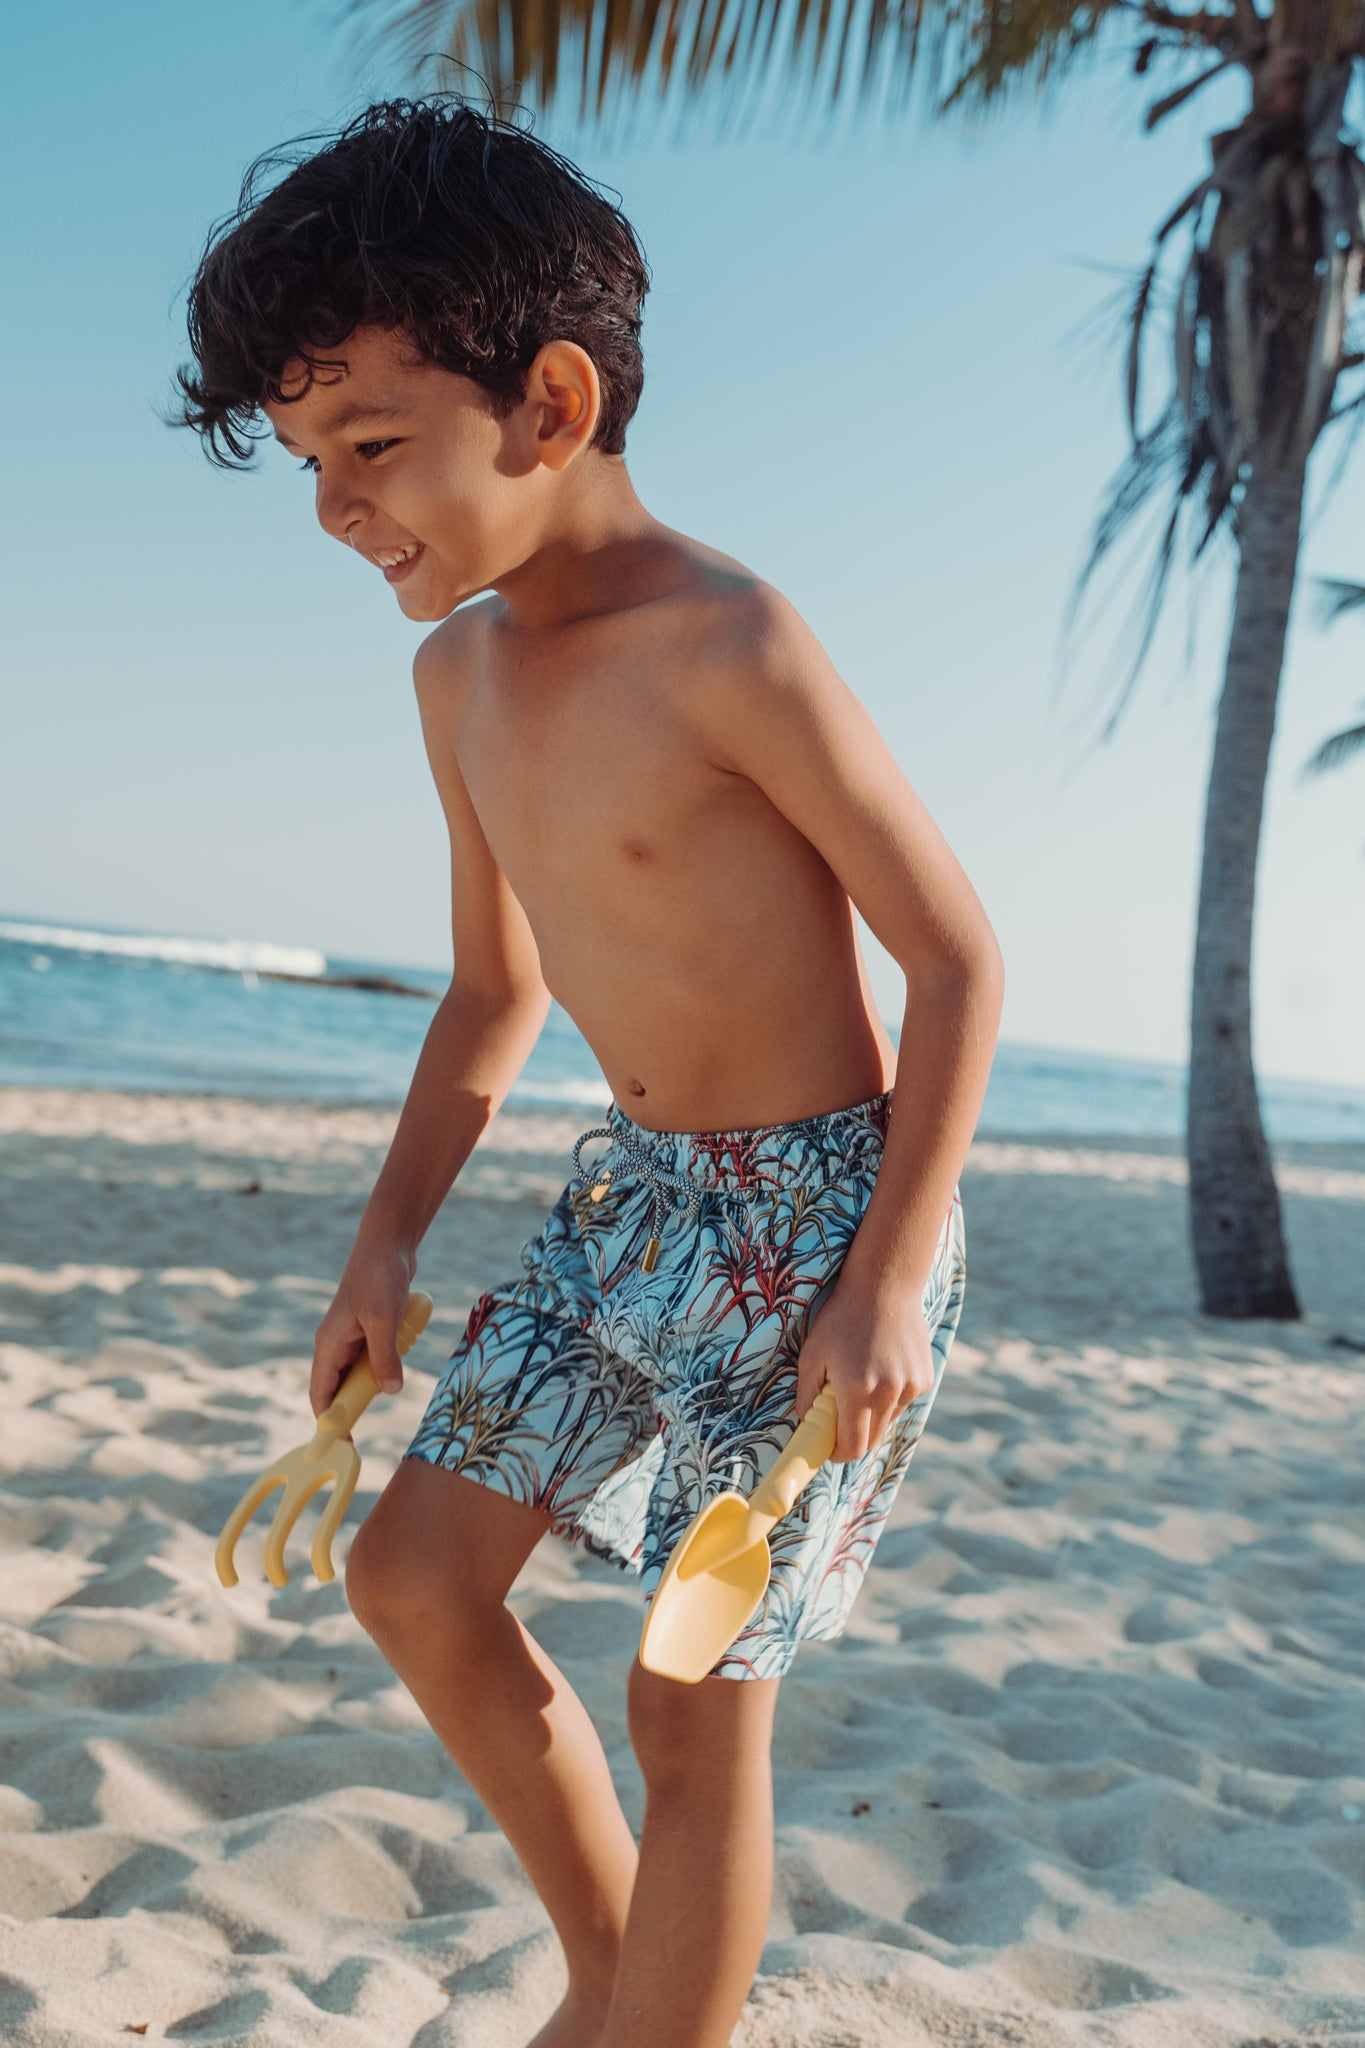 Side standing kid wearing sugar cane print swim trunk with ocean and beach background